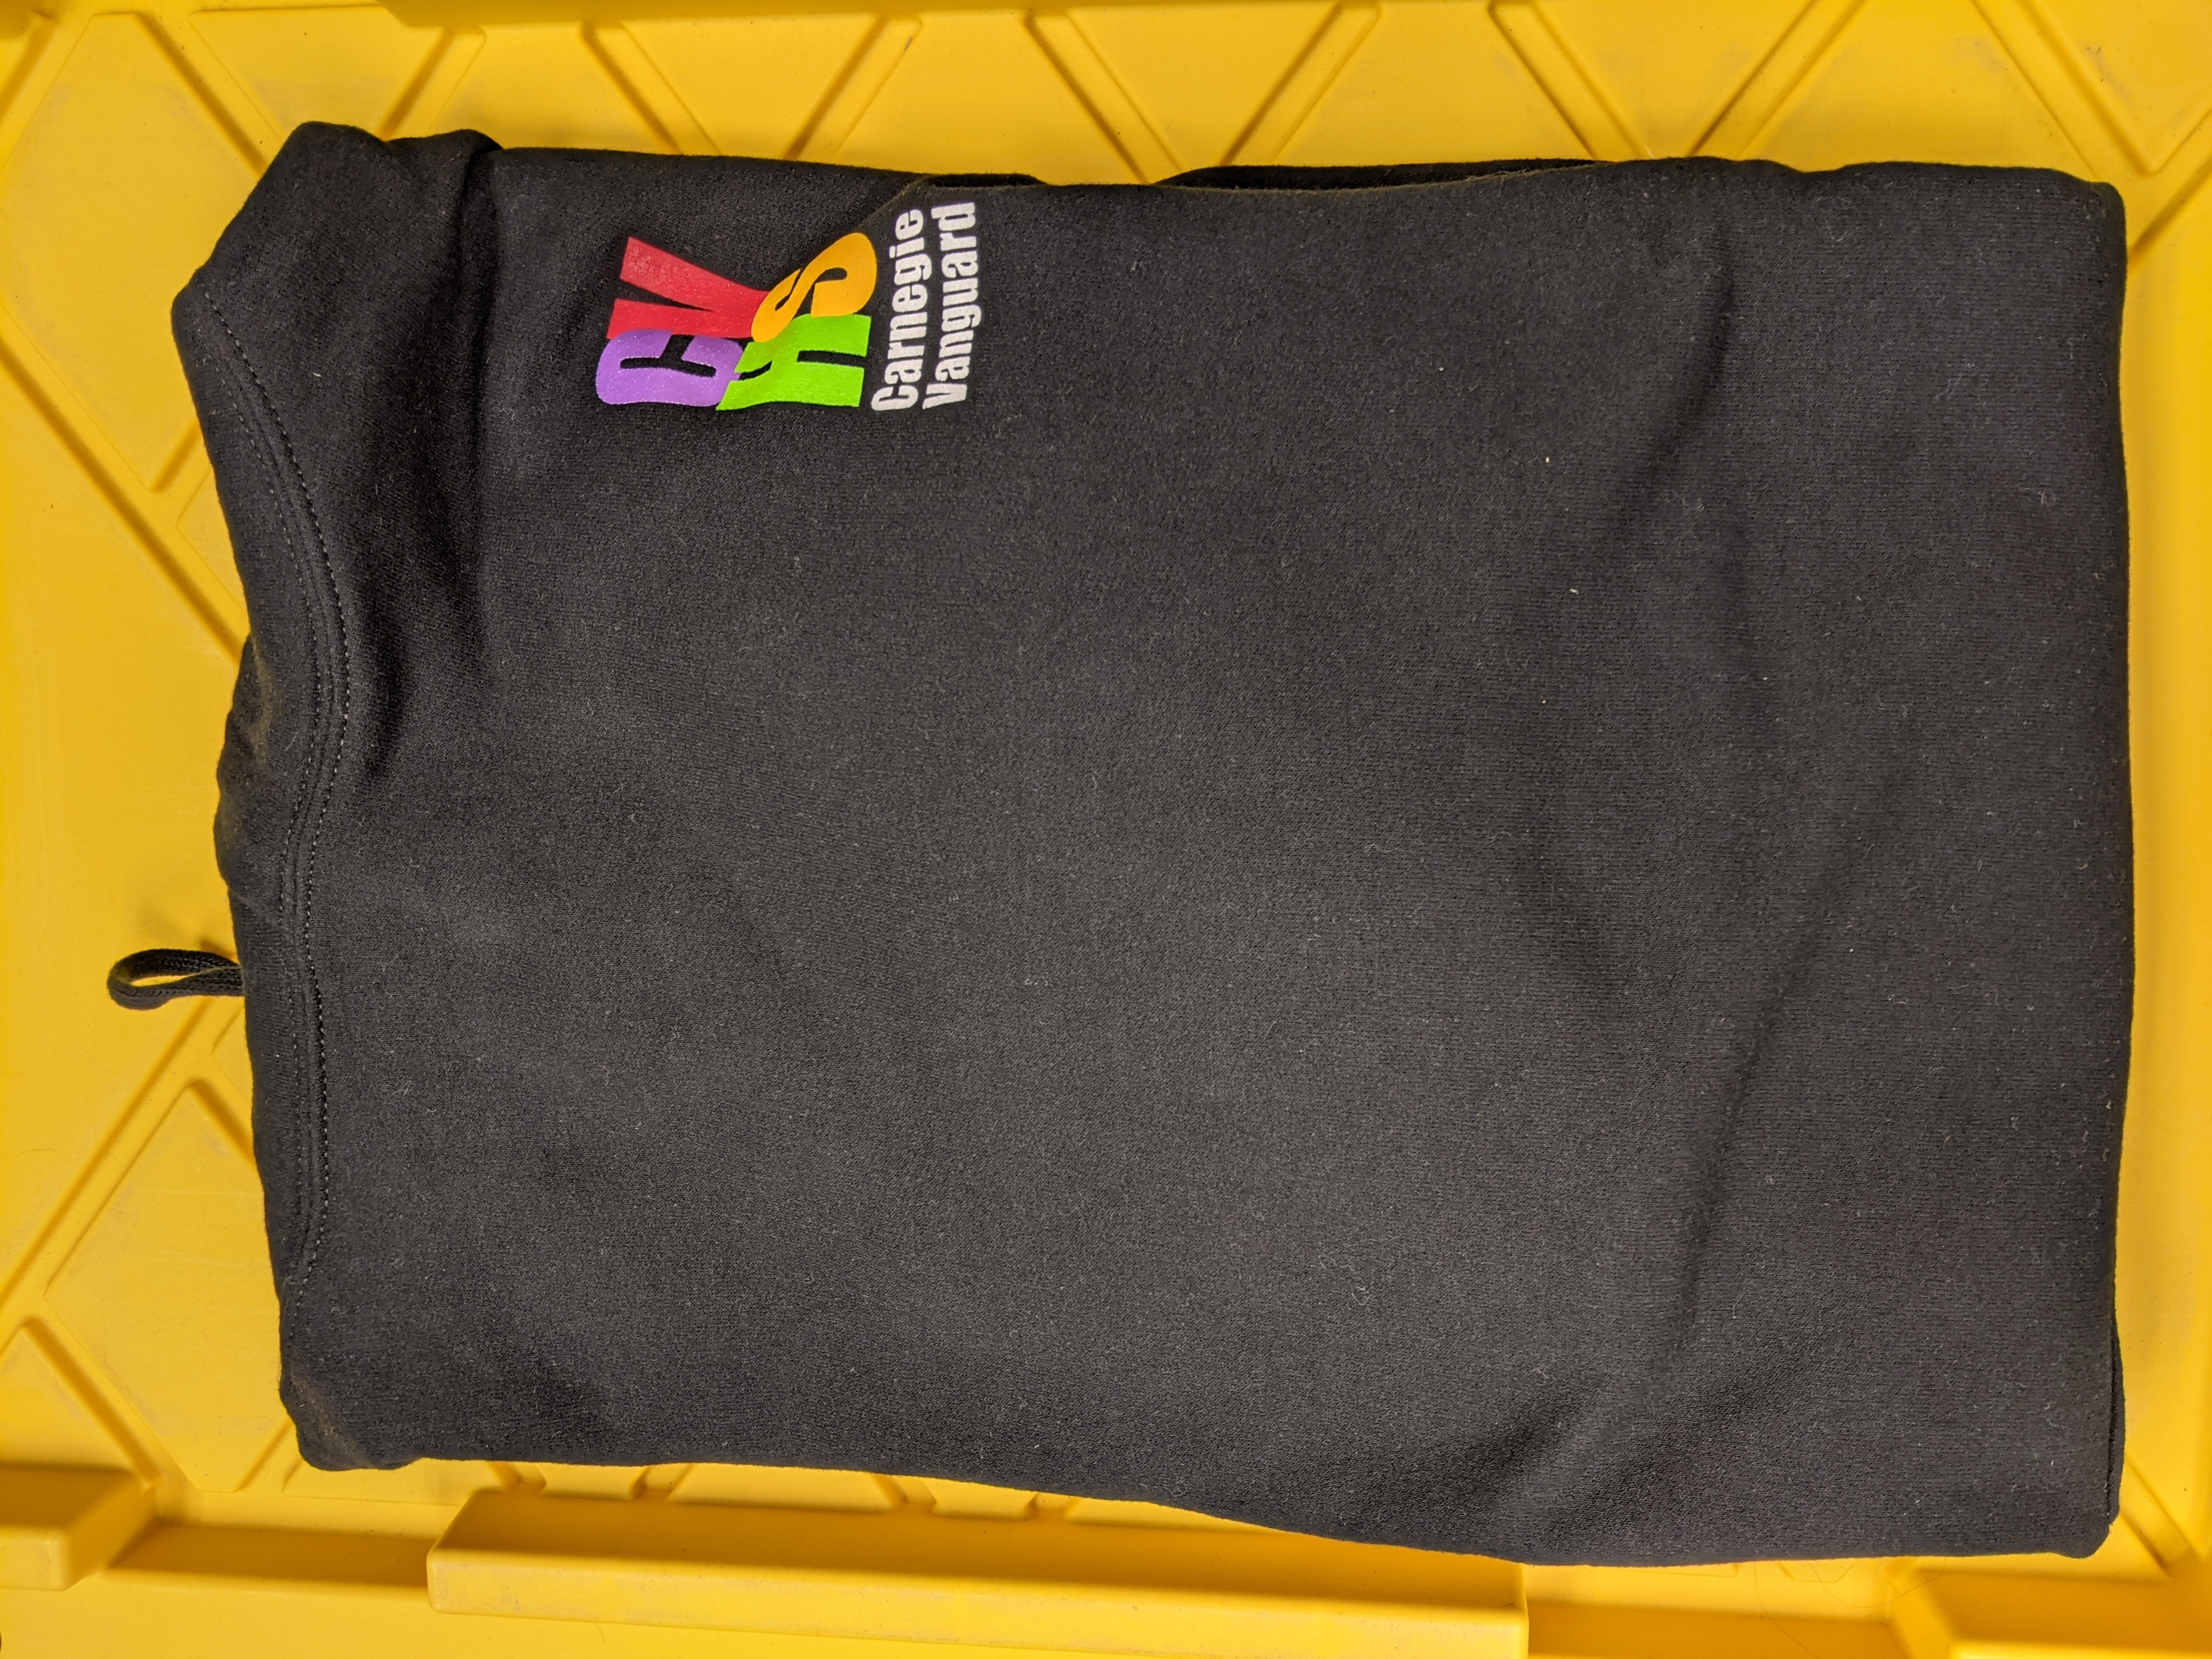 Sweatshirt Pullover Hoodie, Black with 4-color logo, 3XL ONLY